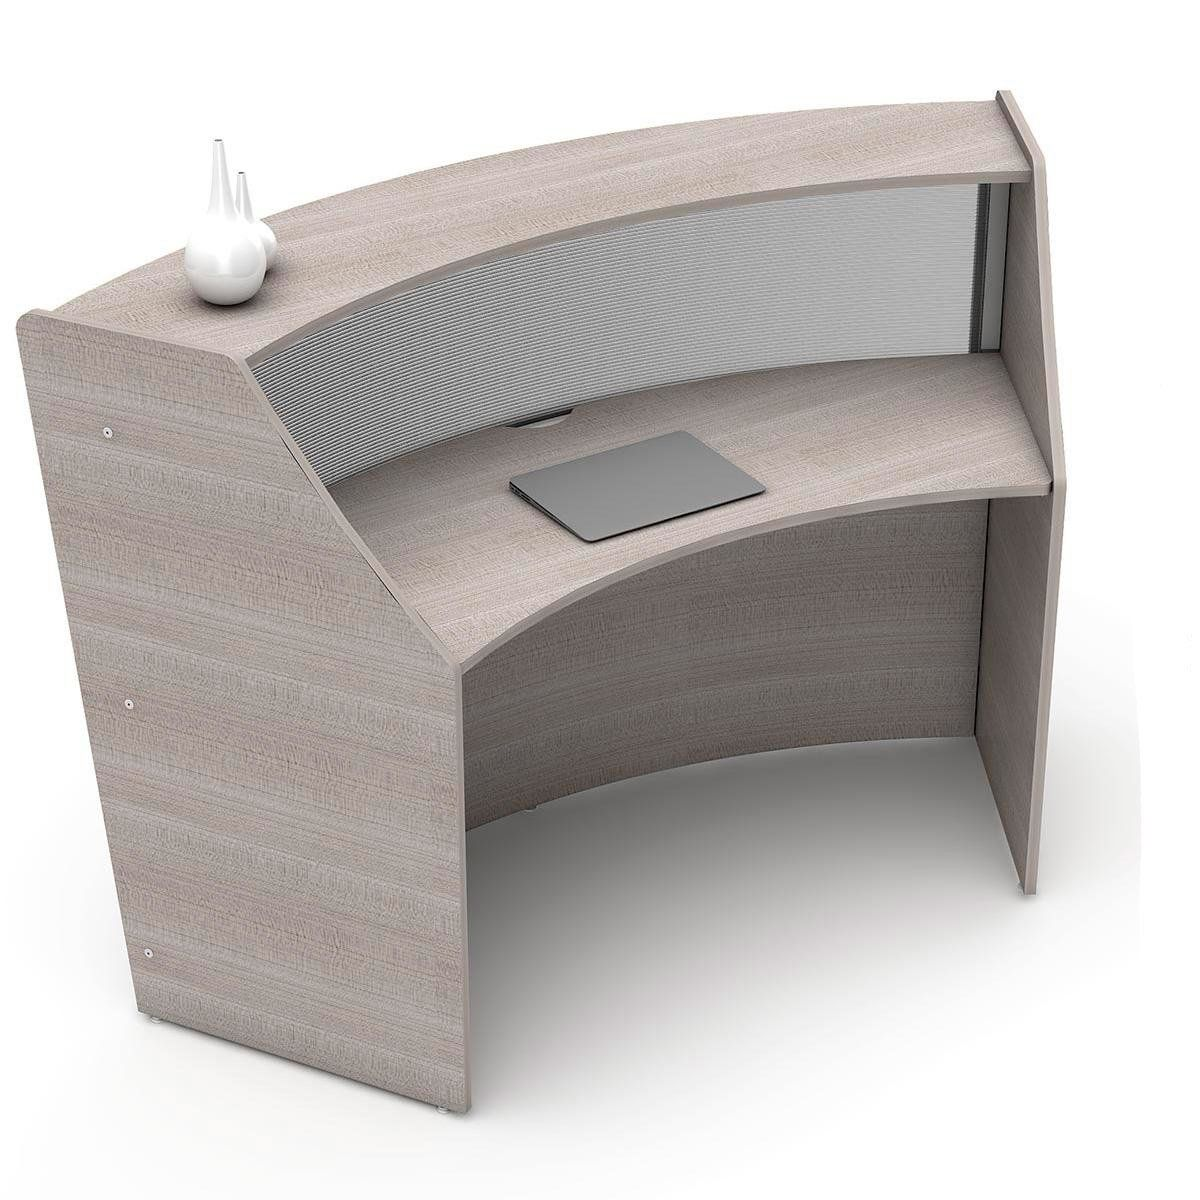 Linea Italia Curved Reception Desk Single Unit Clear Panel Ash